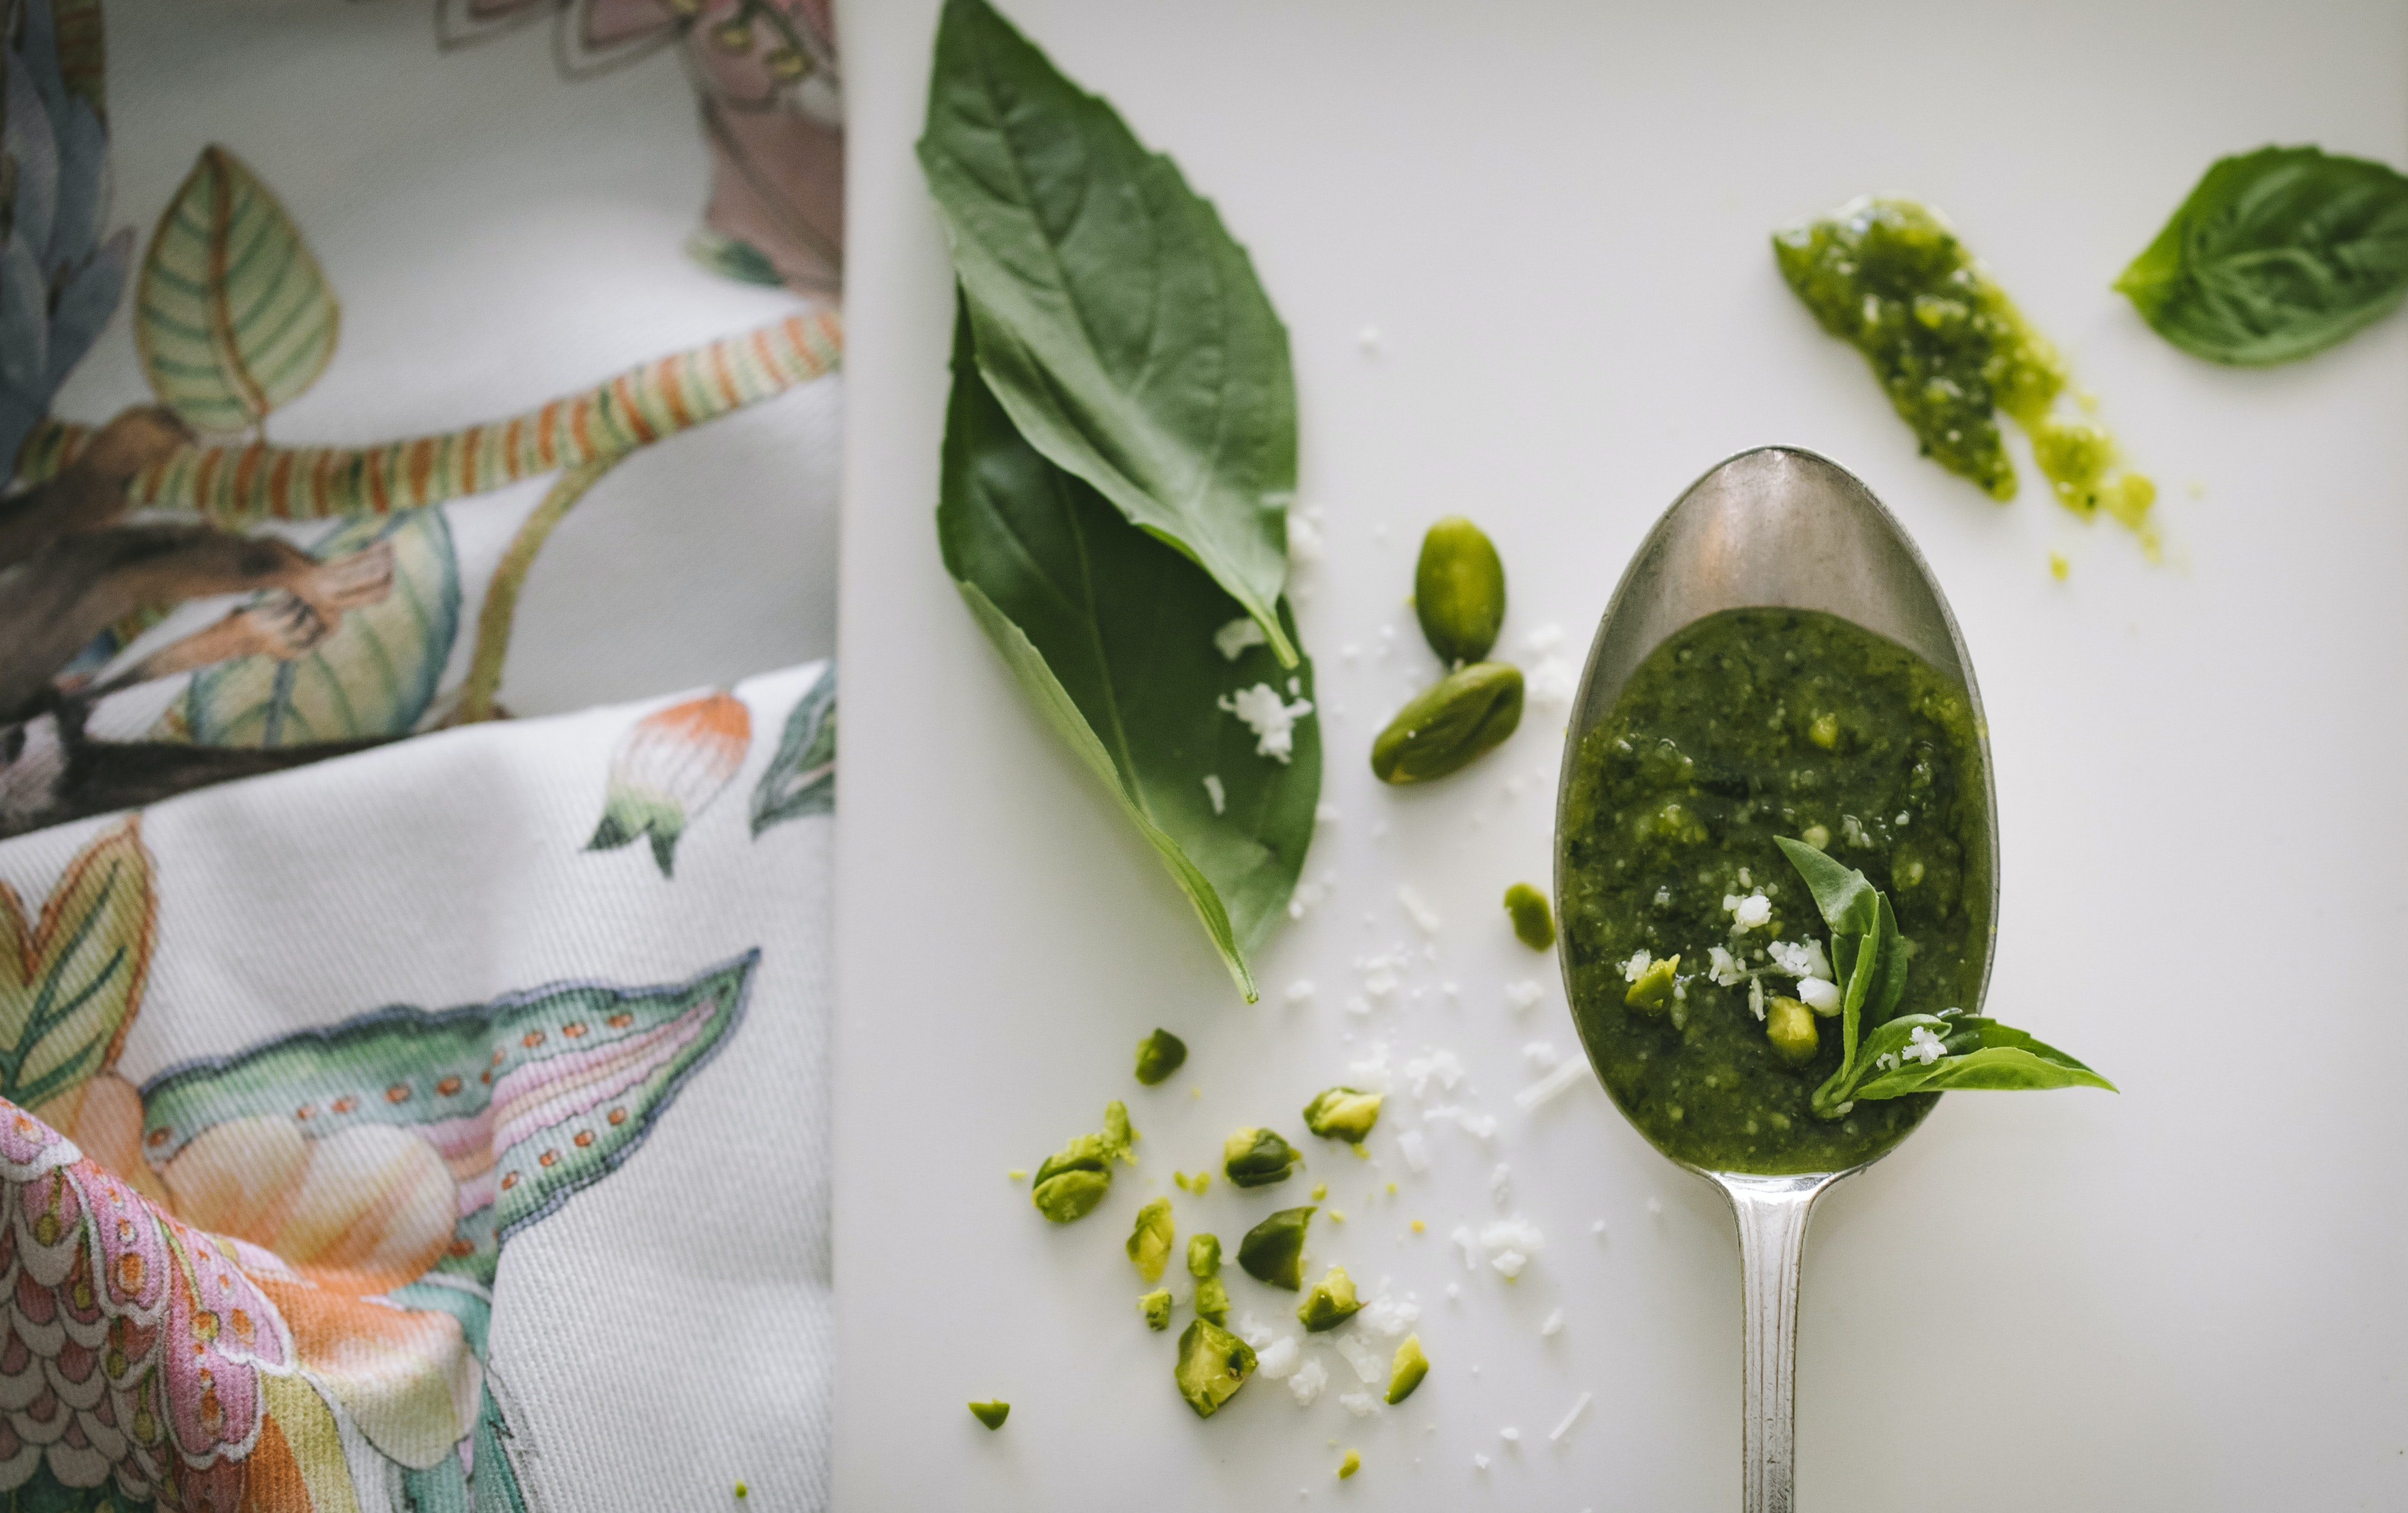 green leaves and gray spoon